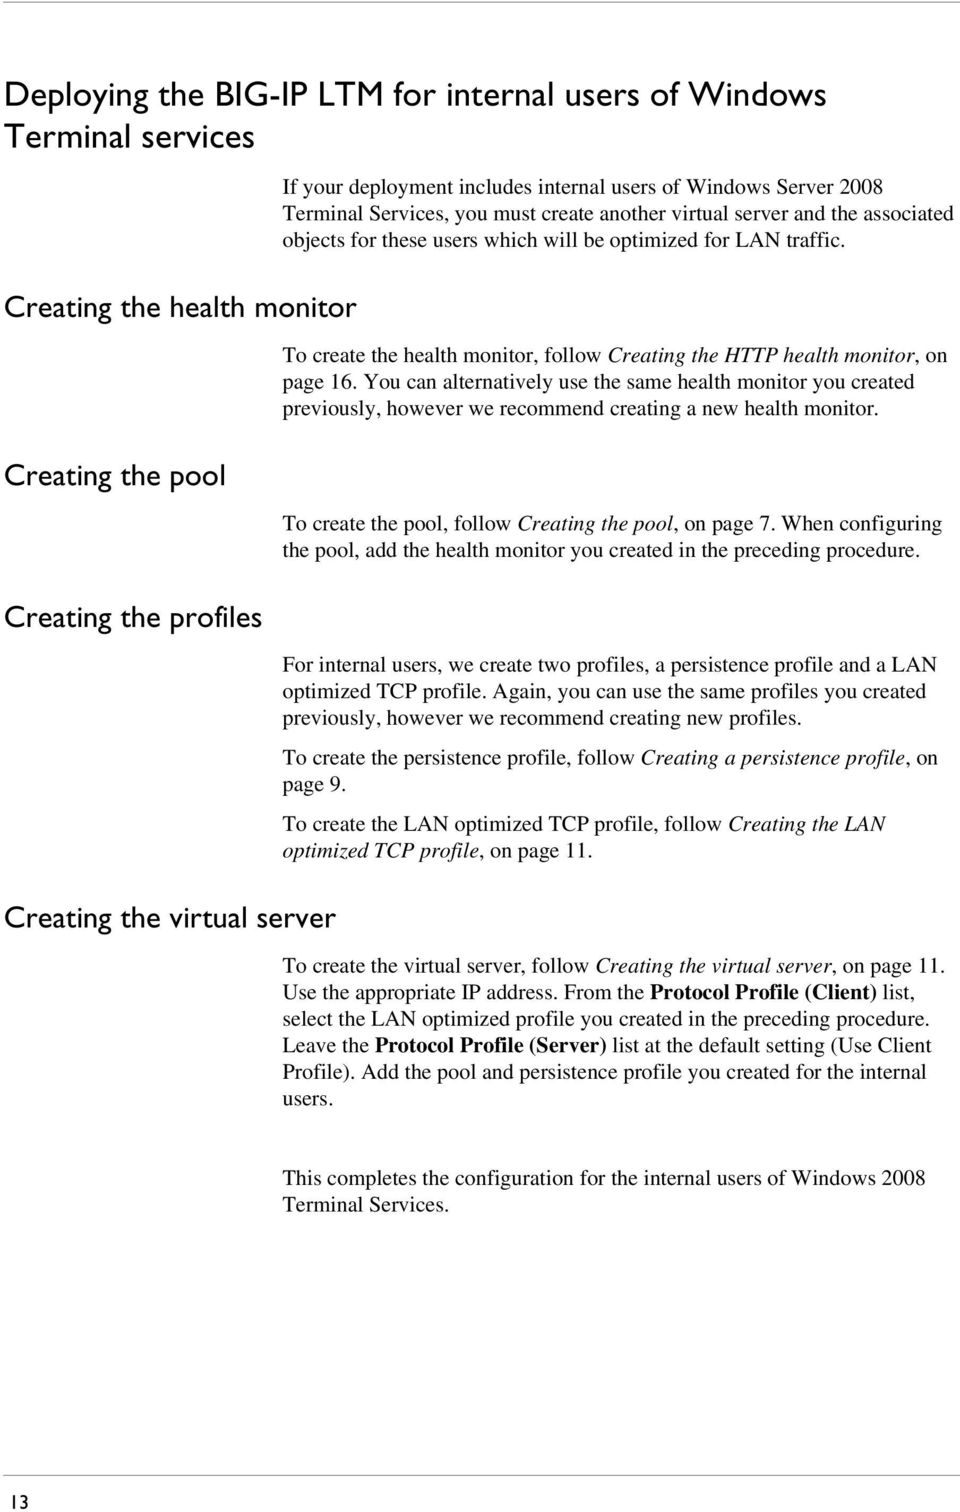 To create the health monitor, follow Creating the HTTP health monitor, on page 16.